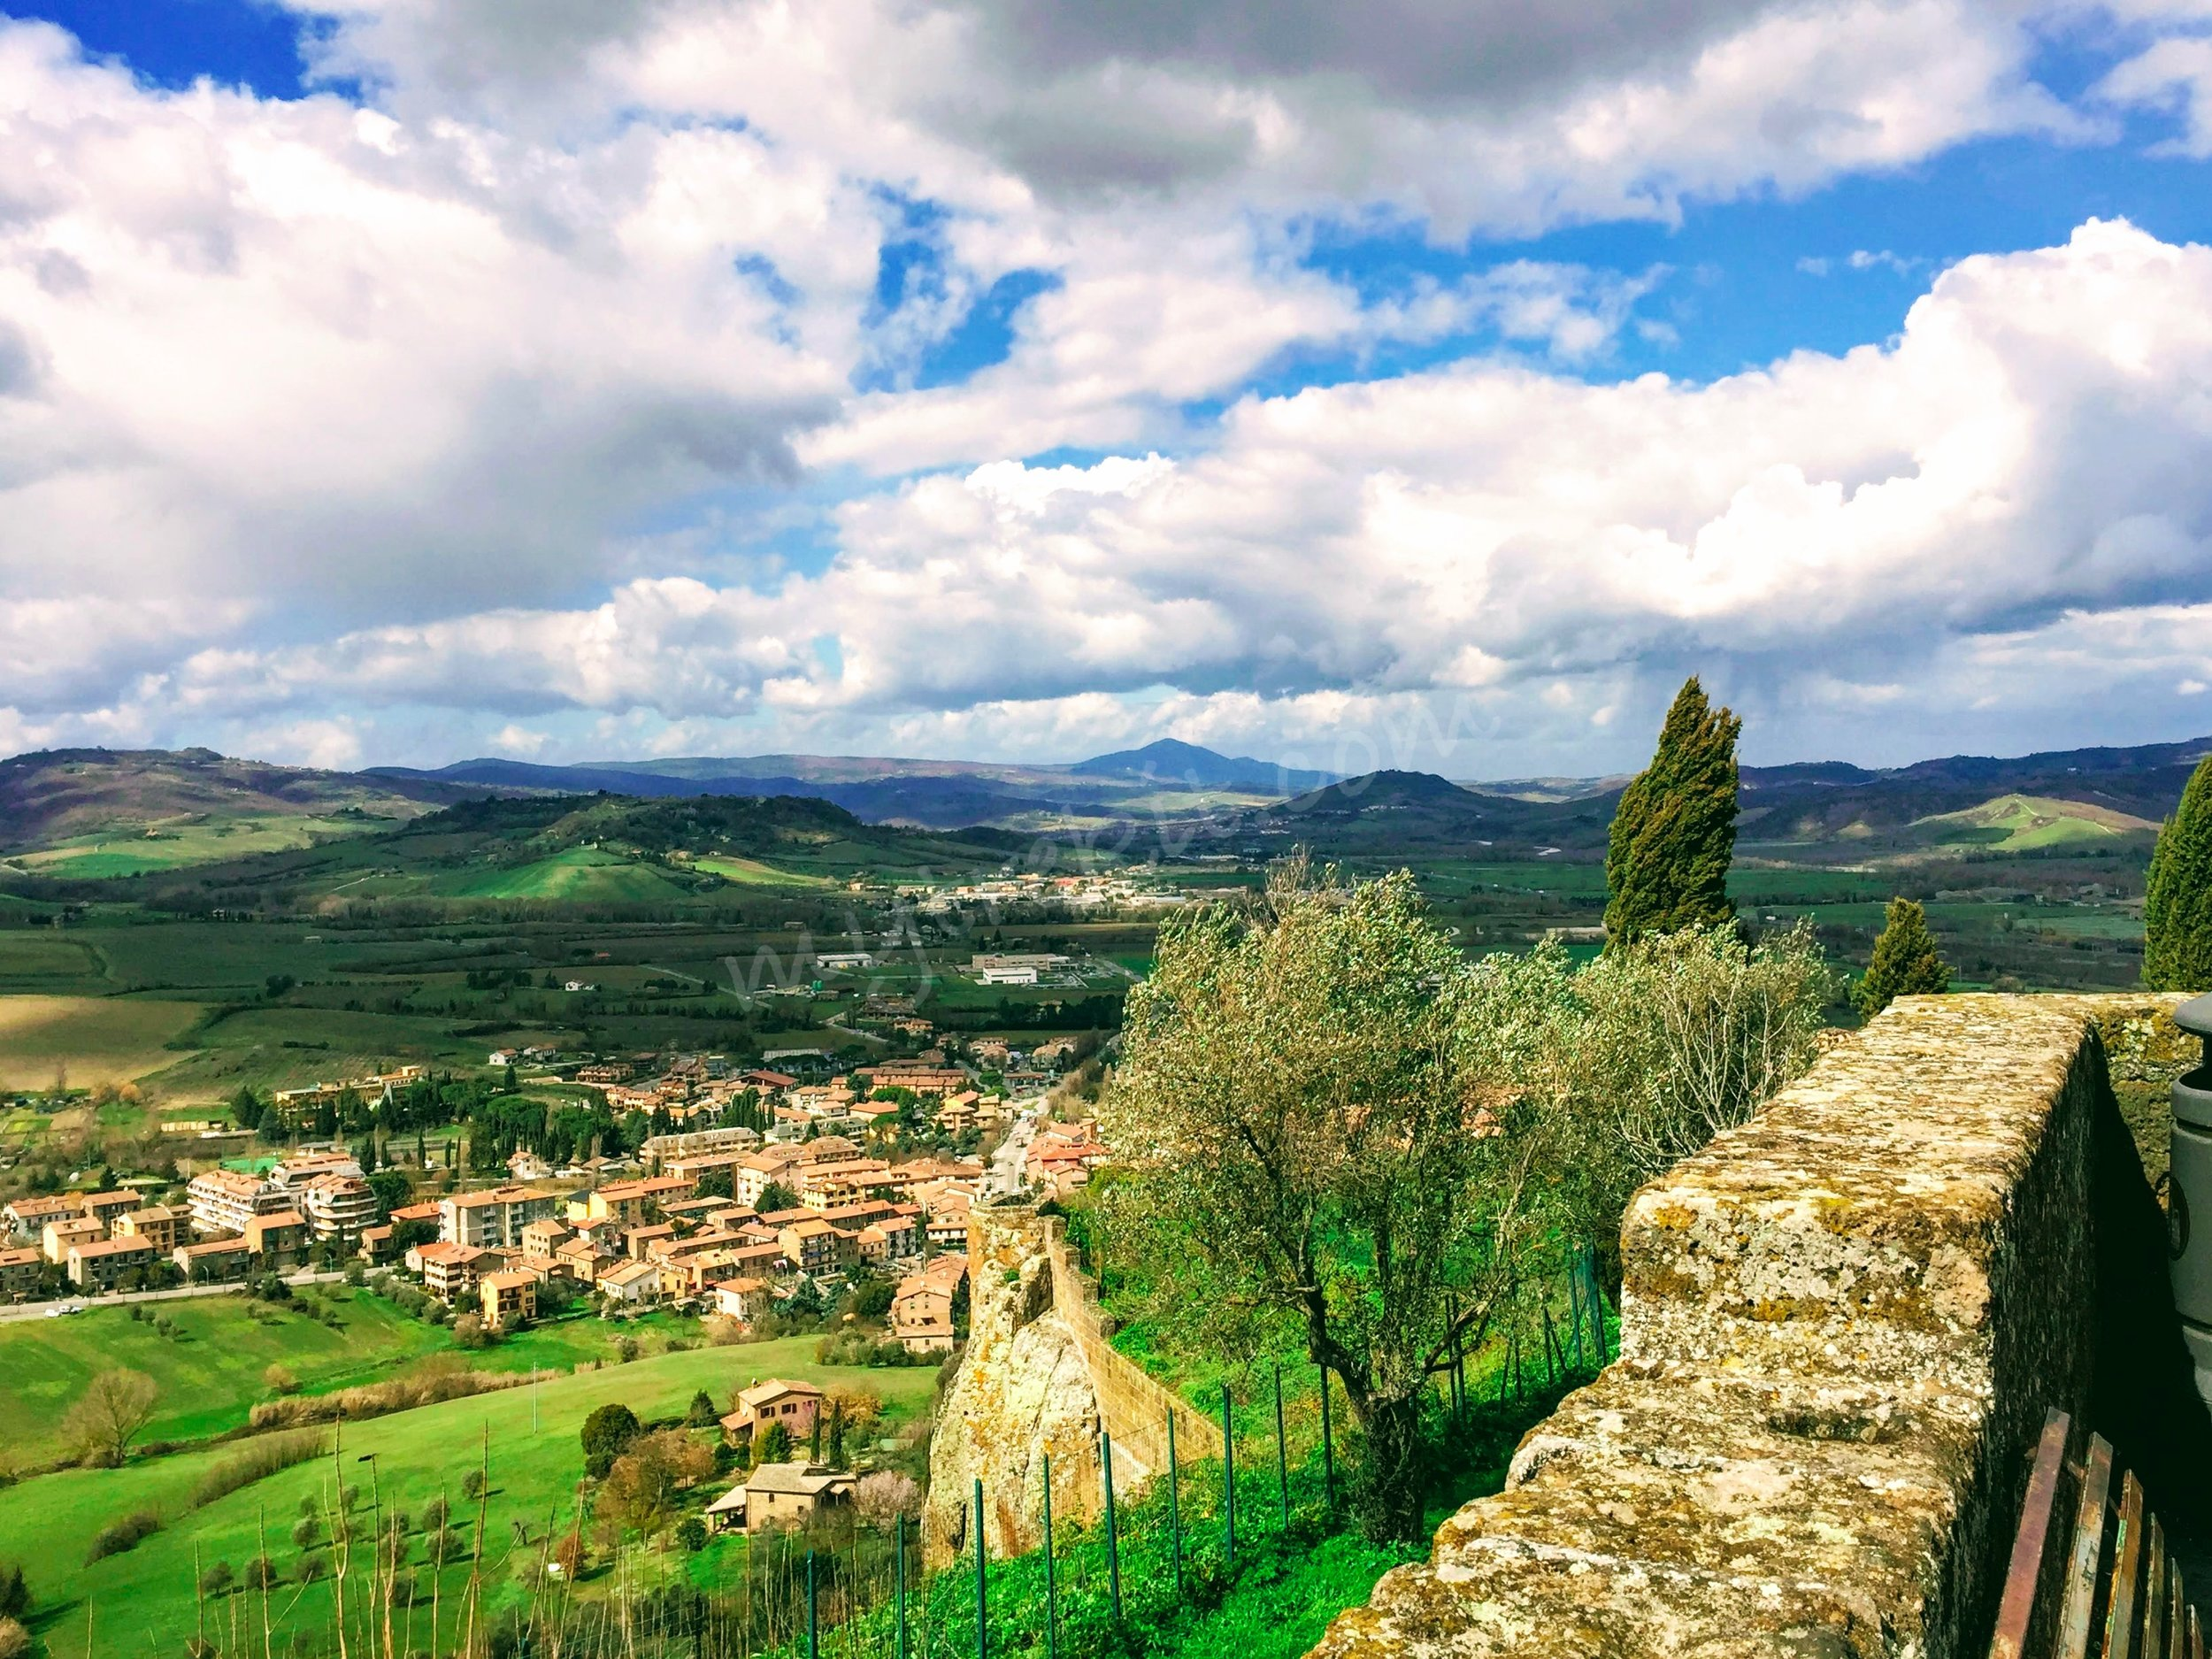 Layers of gorgeous hues paint the landscaped canvas of Umbria.